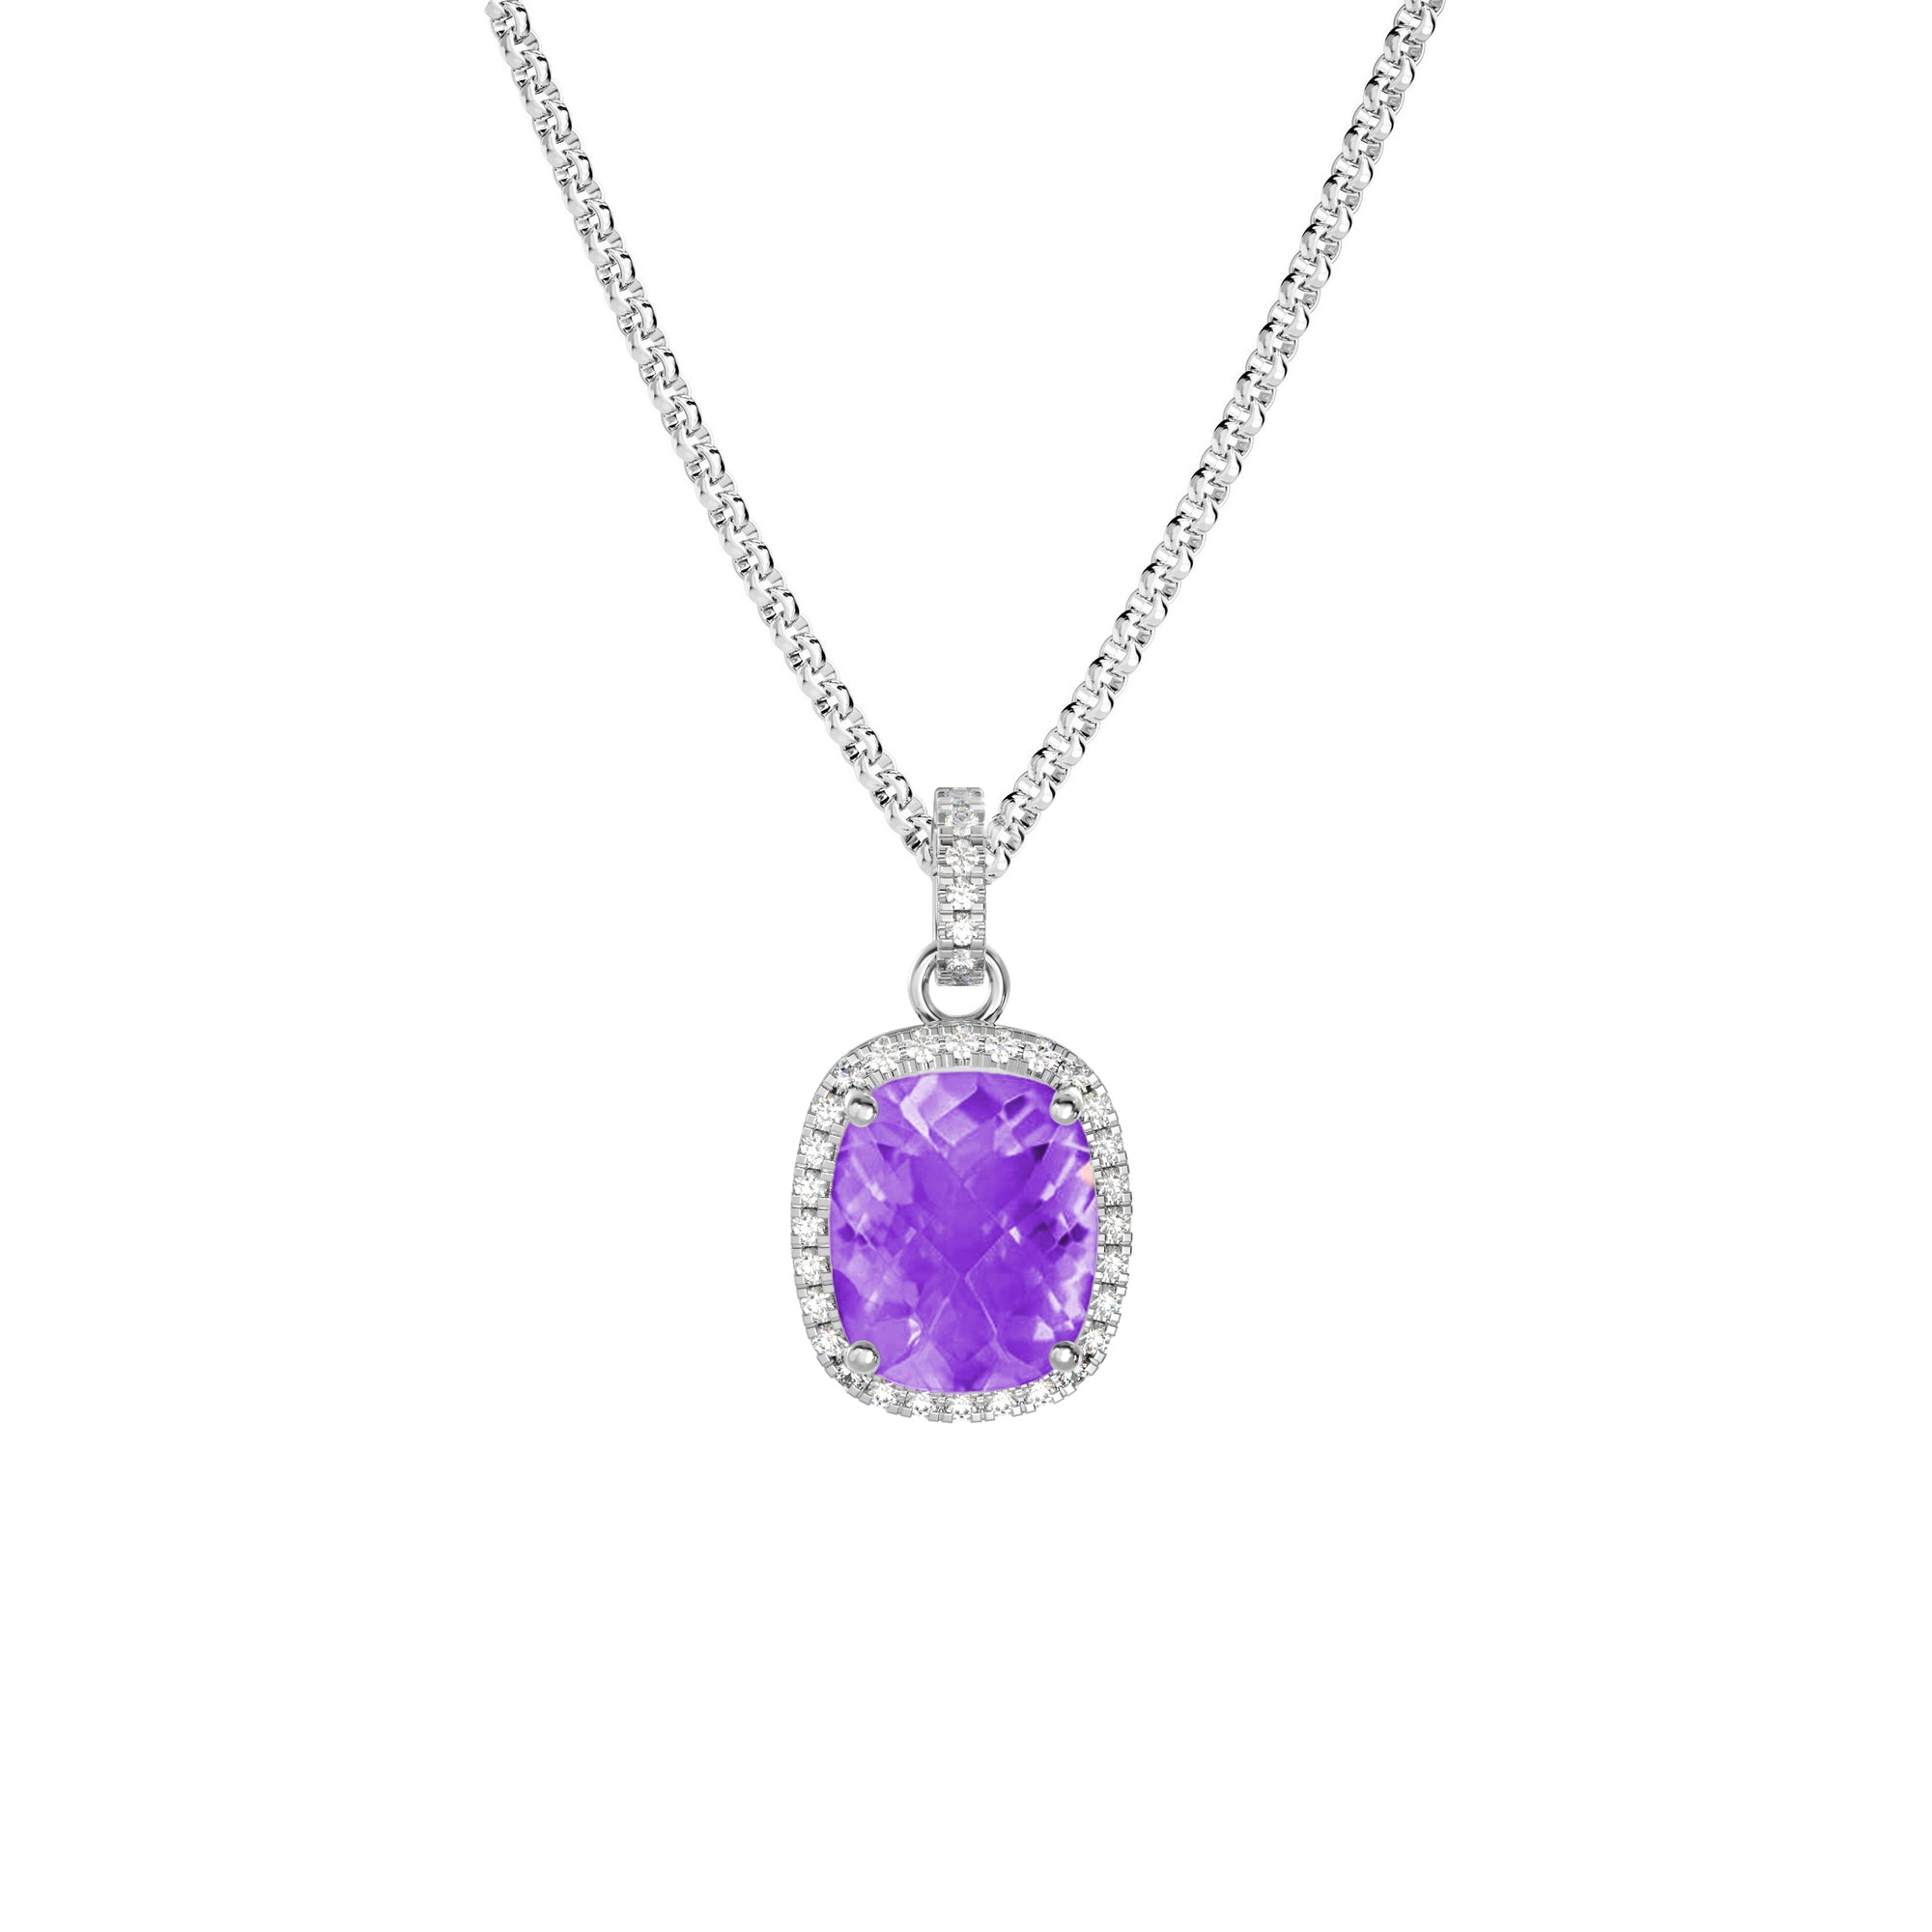 925 Silver Luxe Series Necklace - Laria (Amethyst)